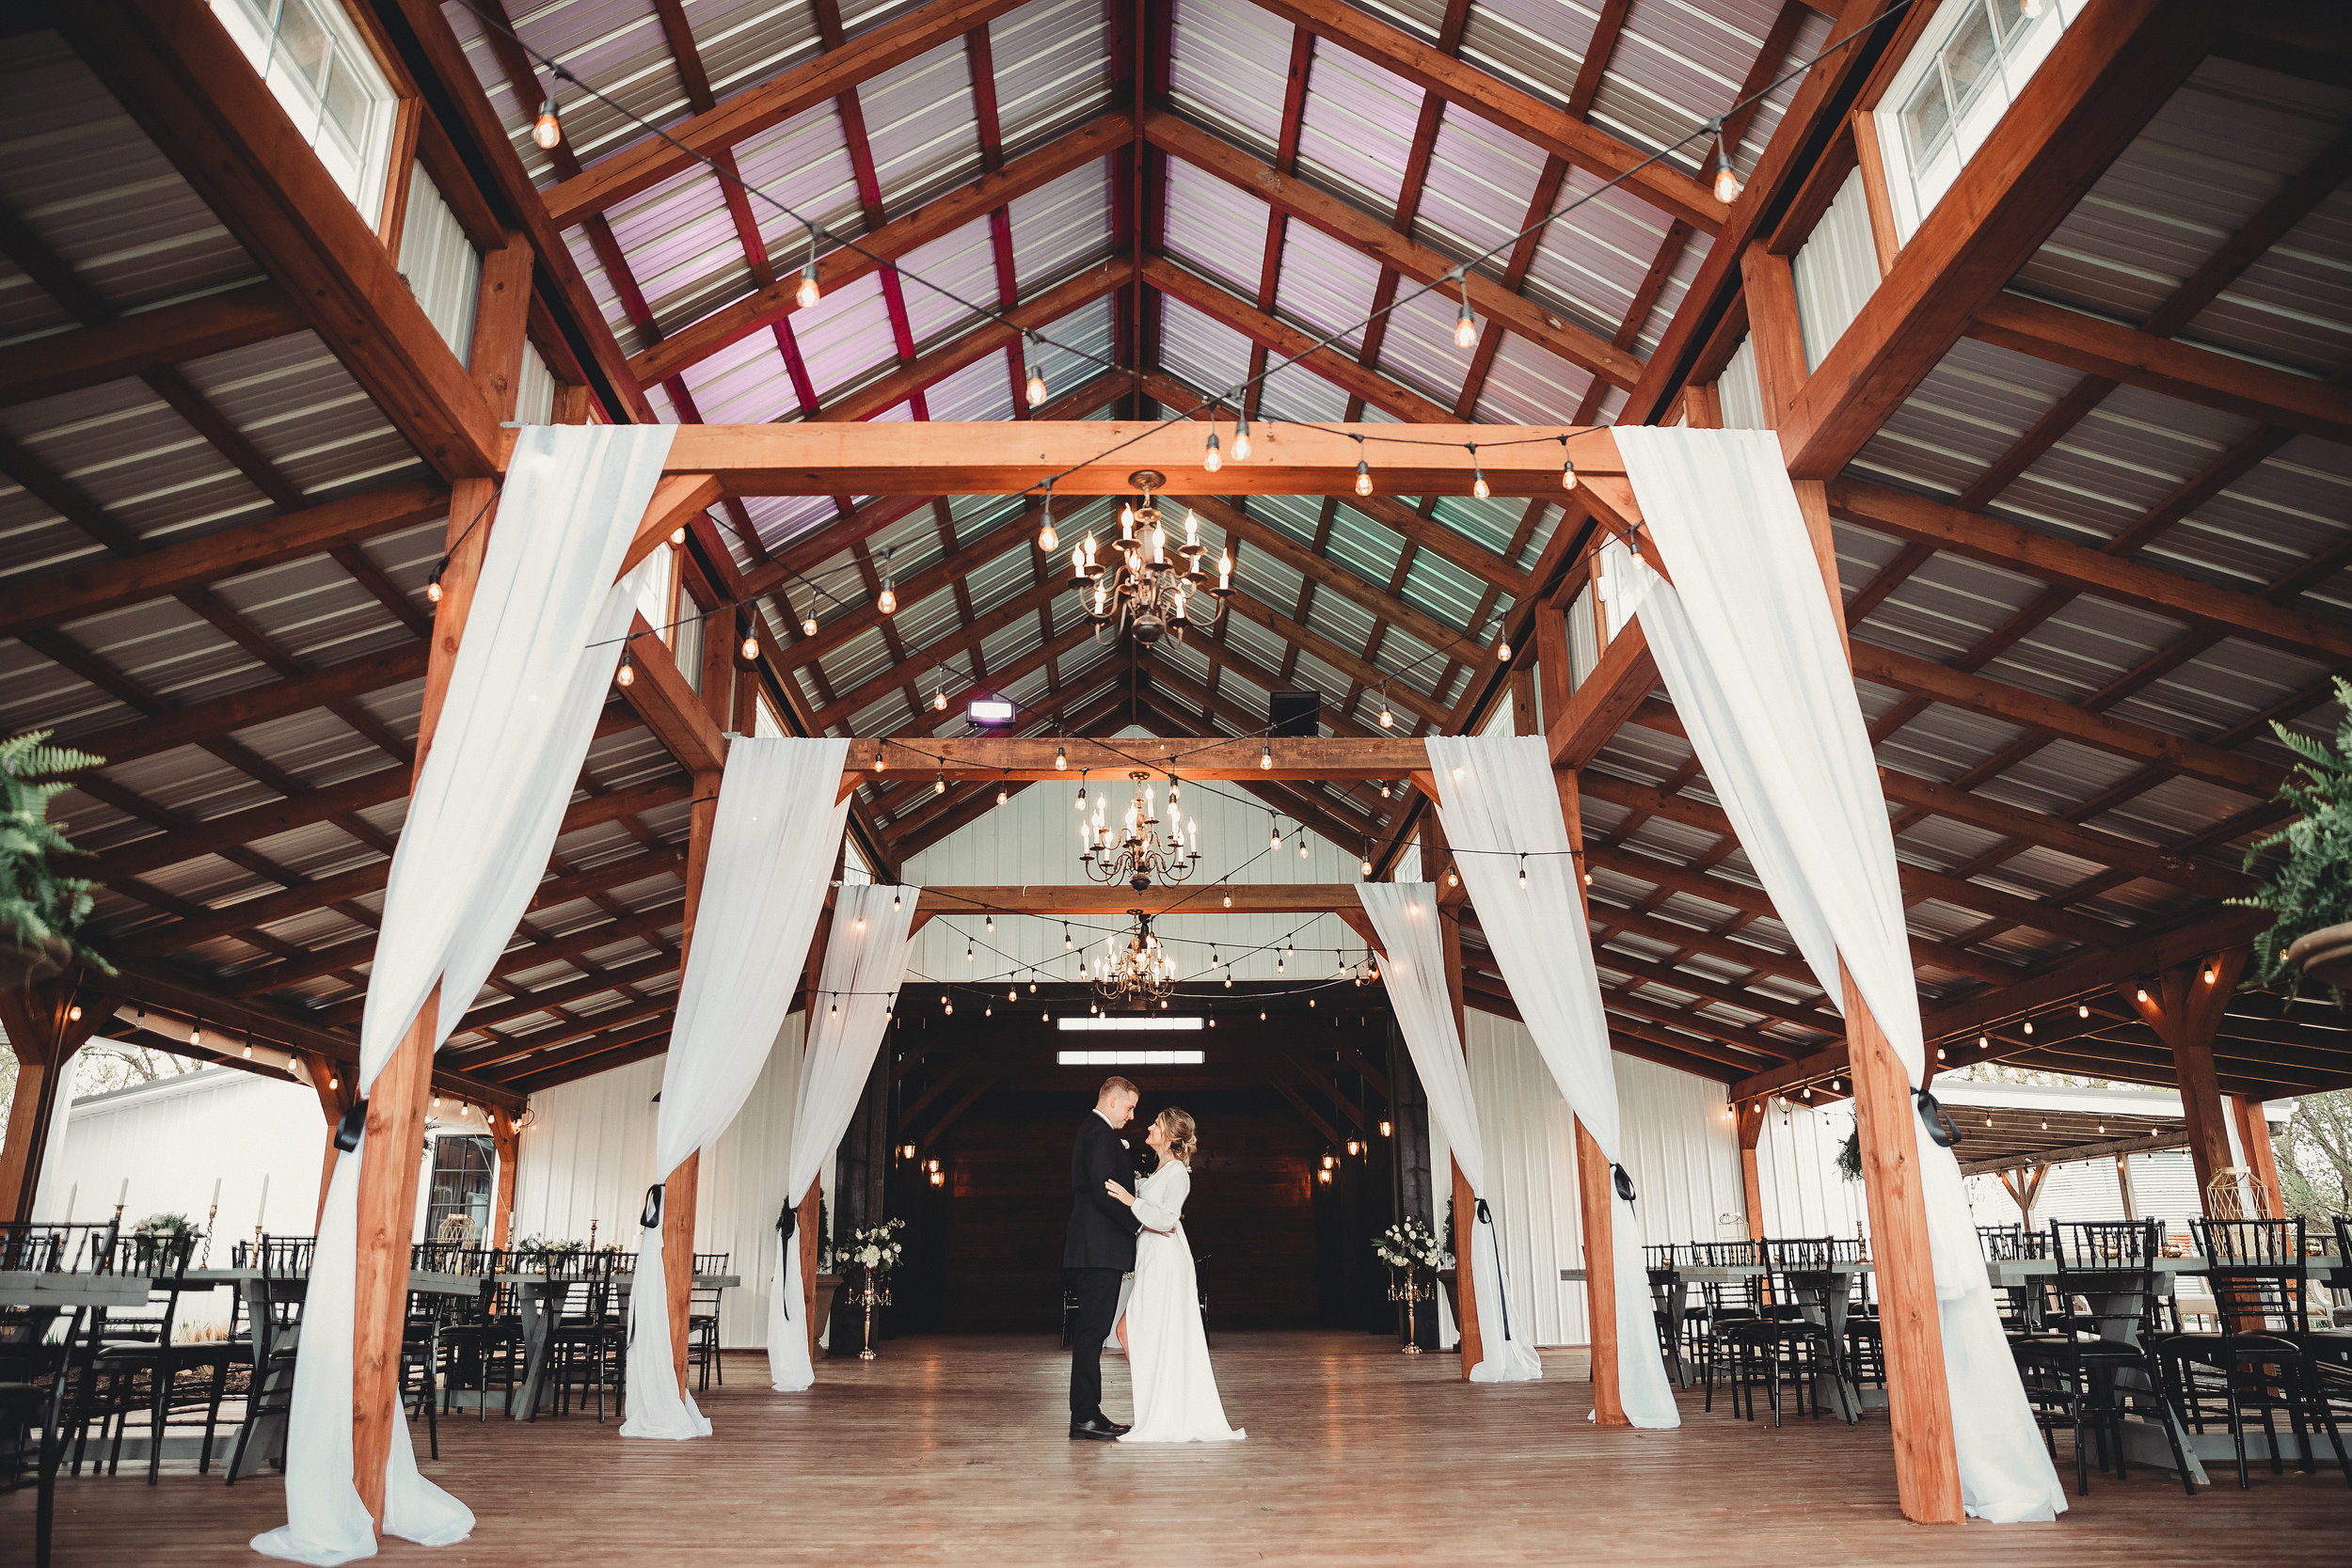 Fabric Draping: - SBD offers fabric draping services in white sheer 12'-24' panels accented by your choice of ribbon color & optional greenery choices at no additional cost. Service available for arches, arbors, backdrops, barn decks, etc.